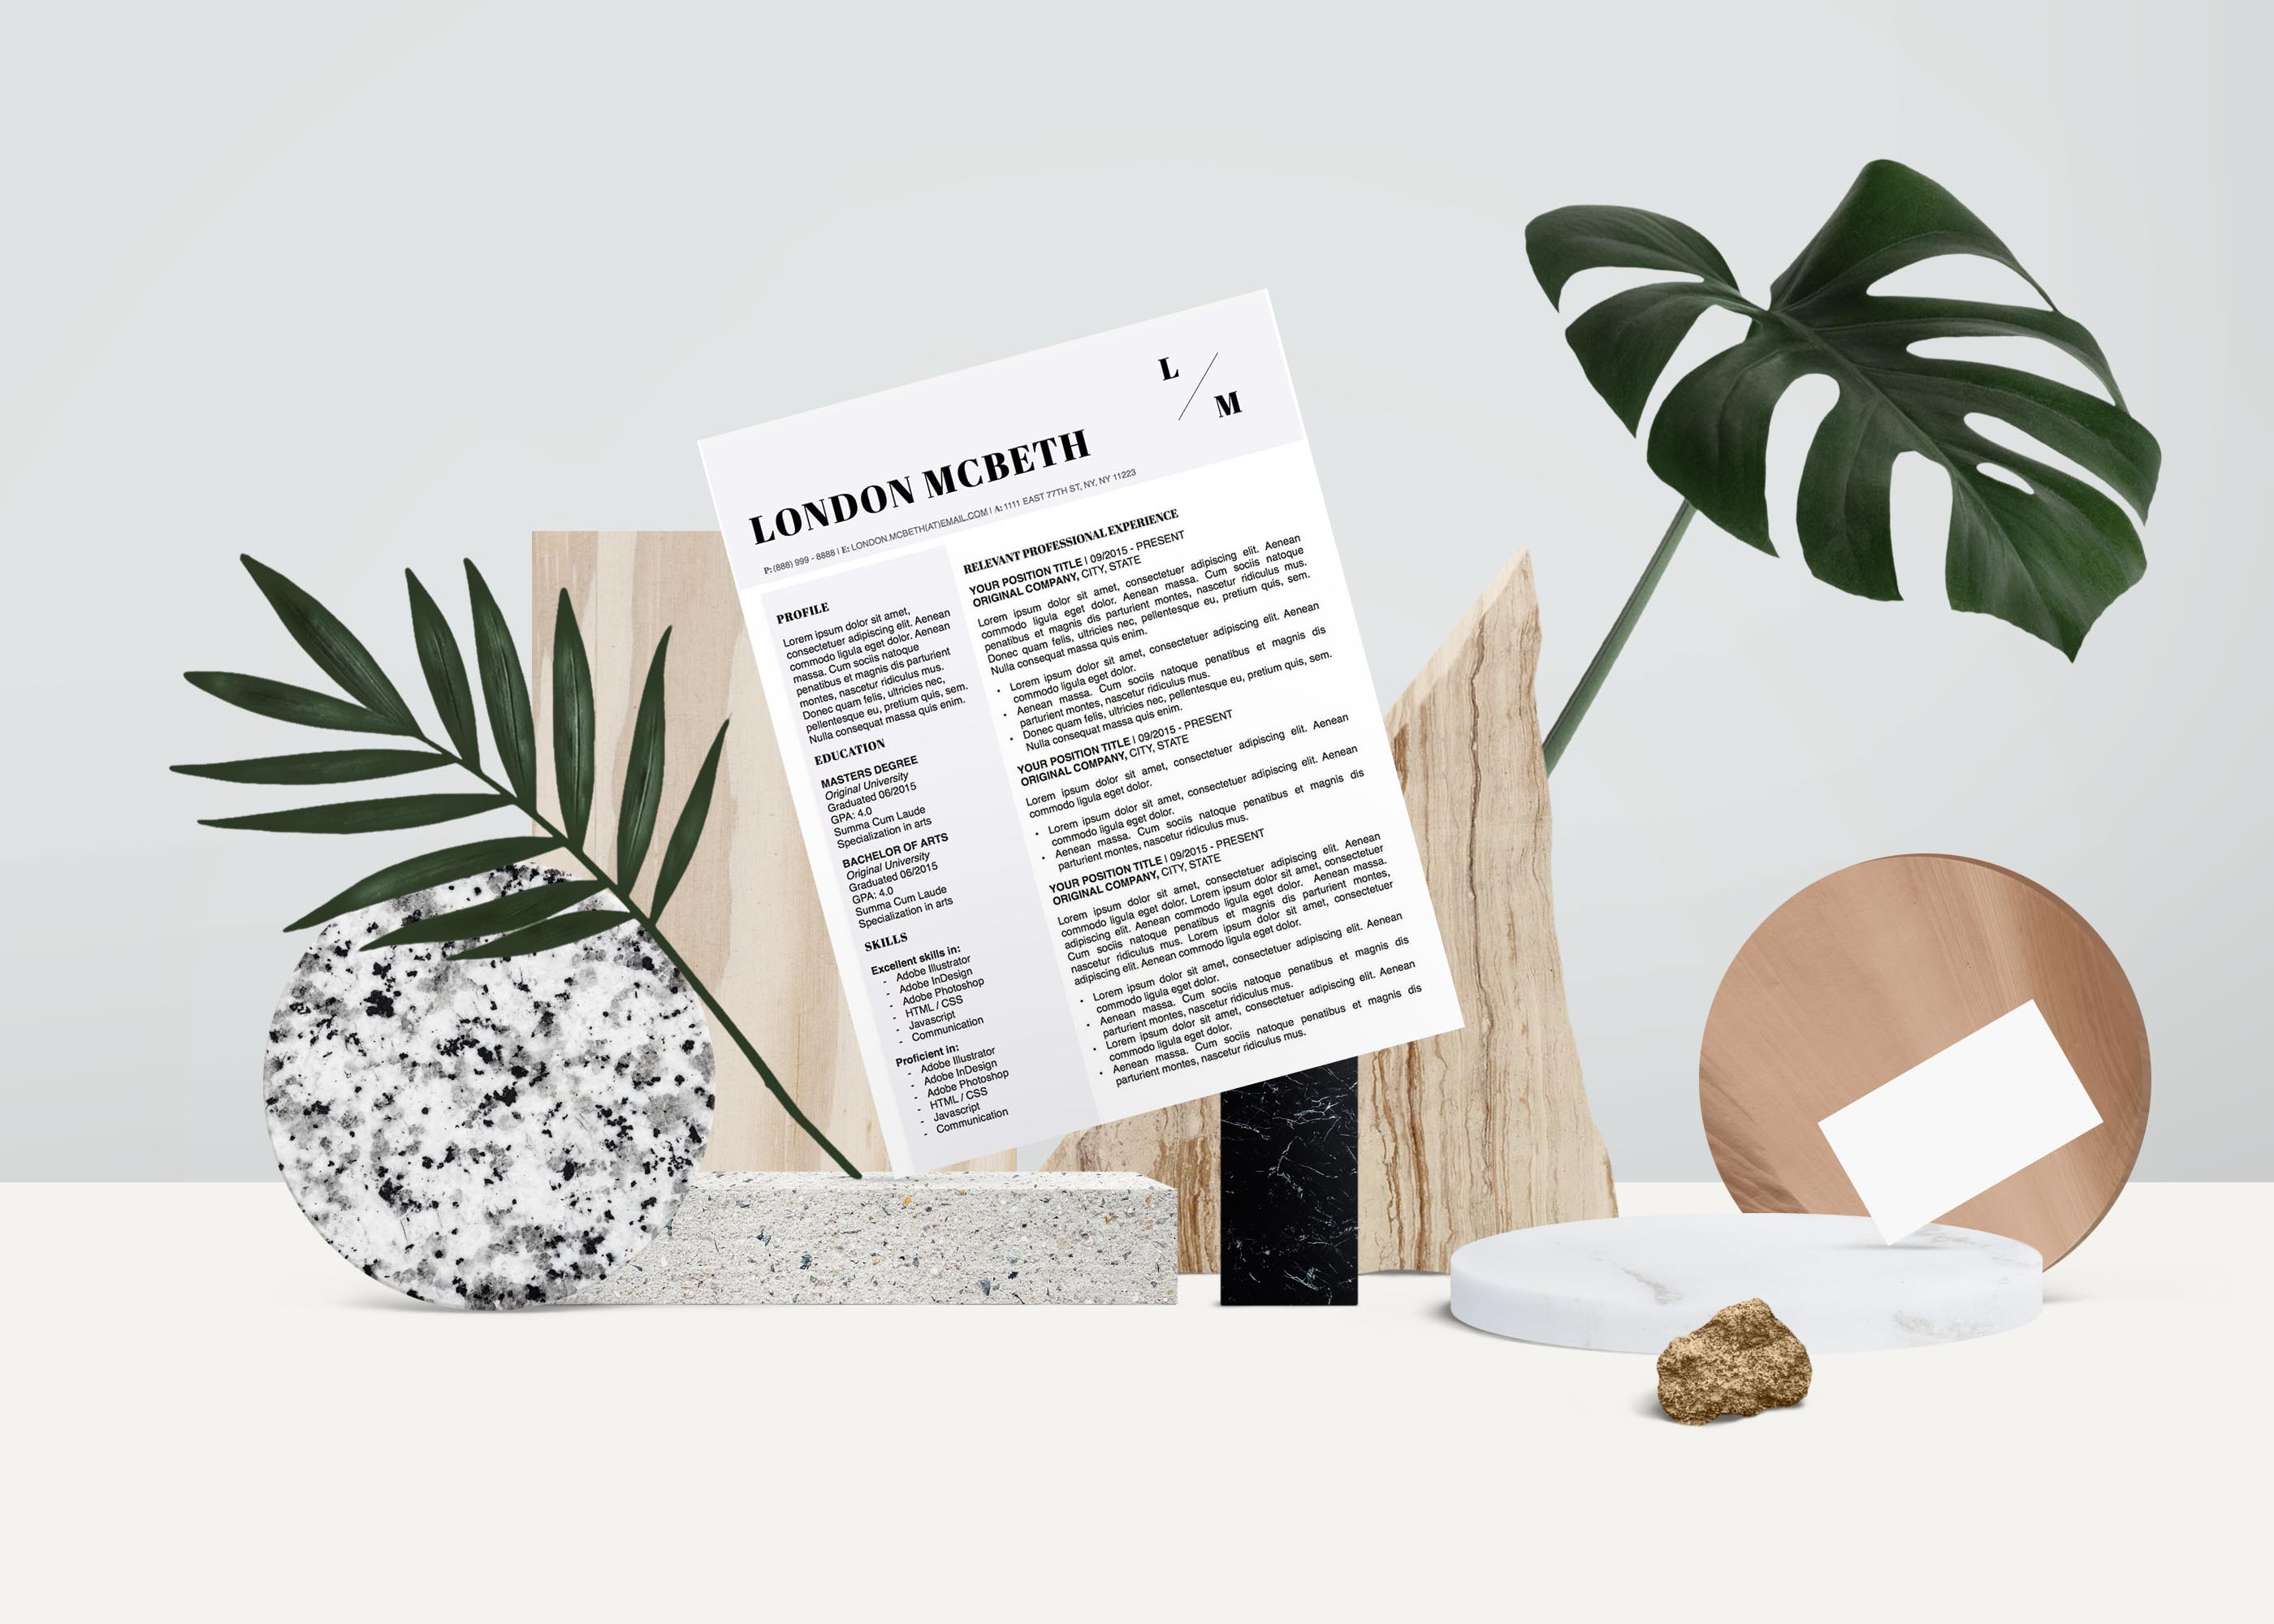 http://standoutshop.com/wp-content/uploads/2018/01/1-LONDON-MCBETH-5-BEST-RESUME-TEMPLATES-OF-2018.jpg